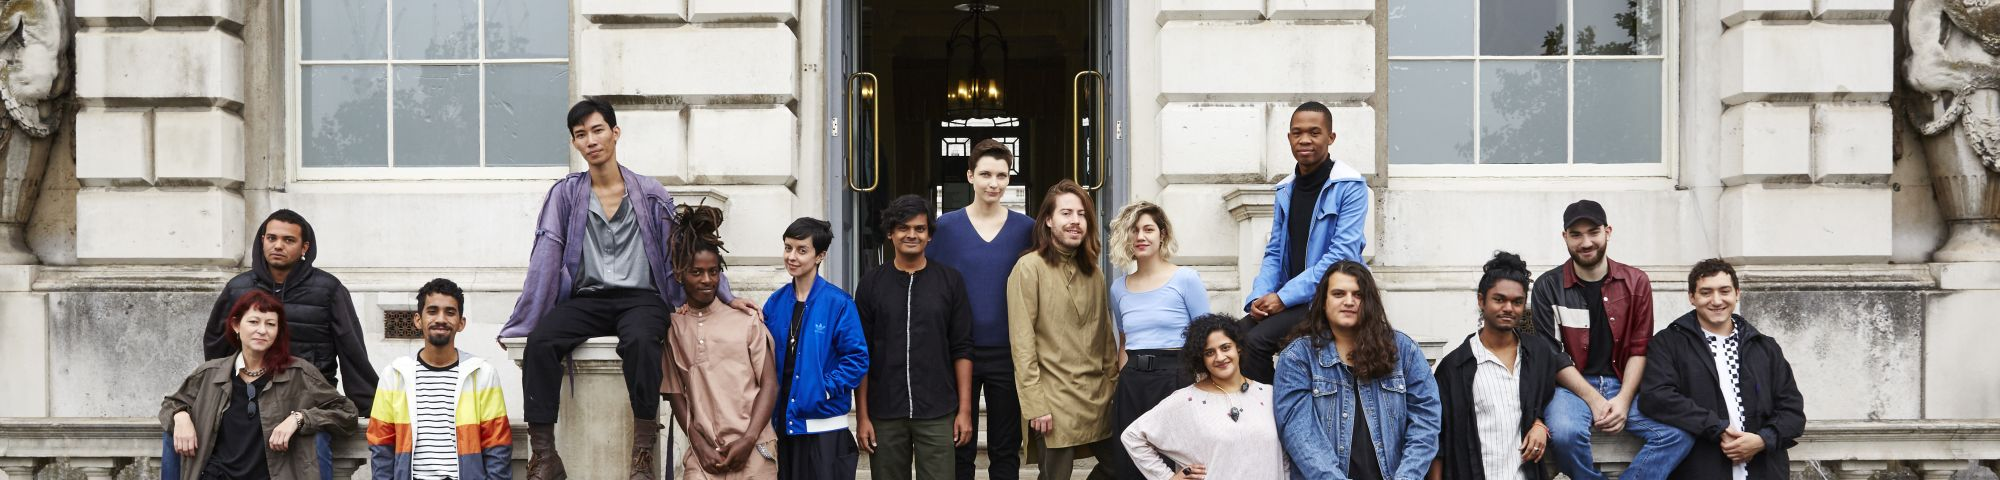 IFS 2019 Designers group portrait